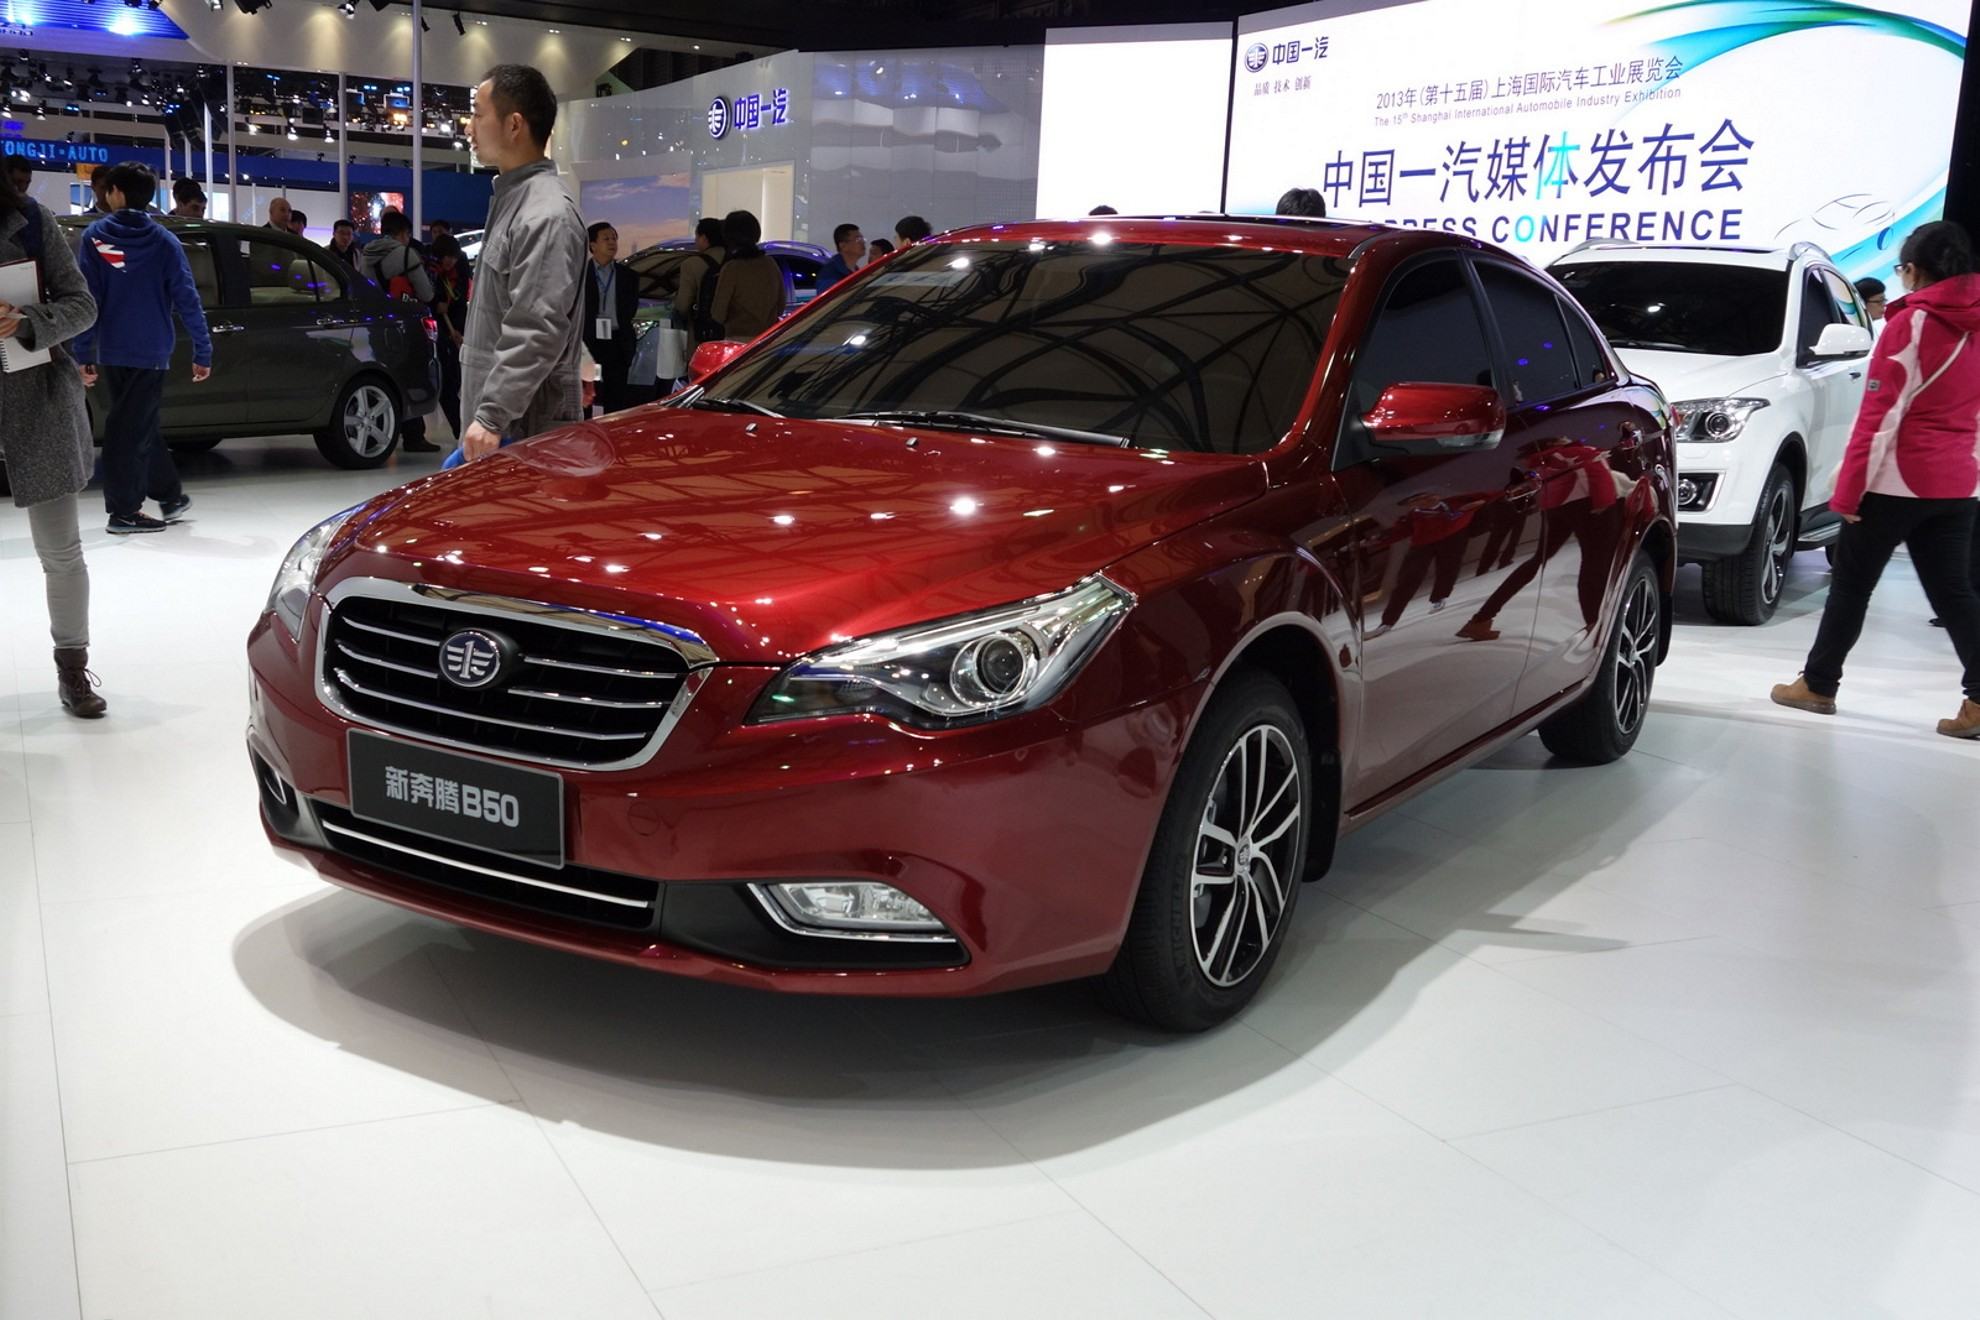 Images Besturn At The Shanghai Auto Show 2013